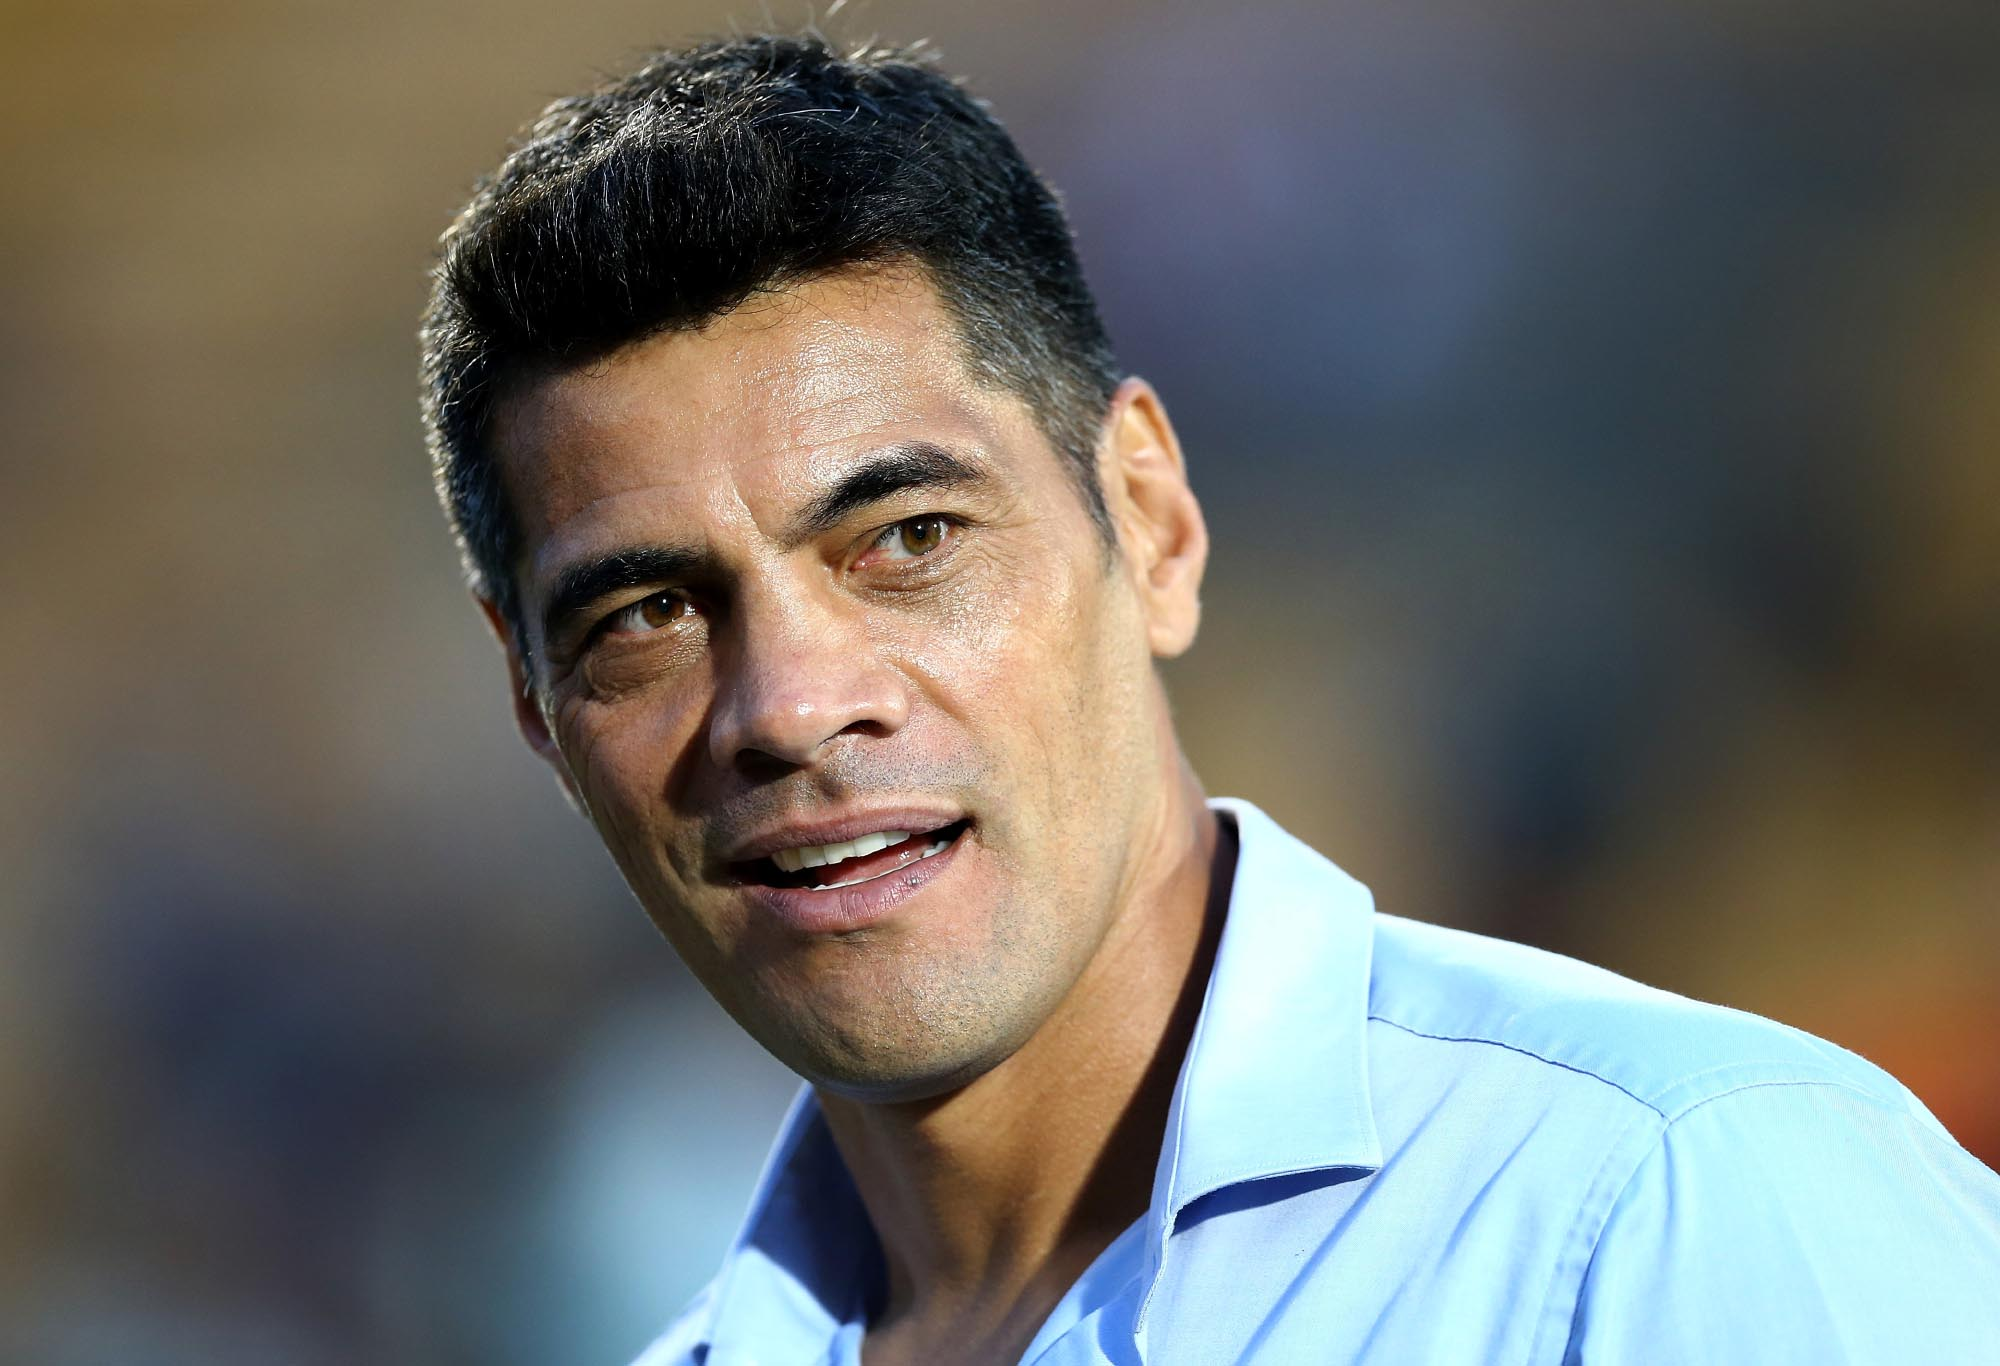 Stephen Kearney, head coach of the Warriors after the Round 5 NRL match between the New Zealand Warriors and the Gold Coast Titans at Mount Smart Stadium in Auckland, New Zealand, Sunday, April 2, 2017. (AAP Image/David Rowland)